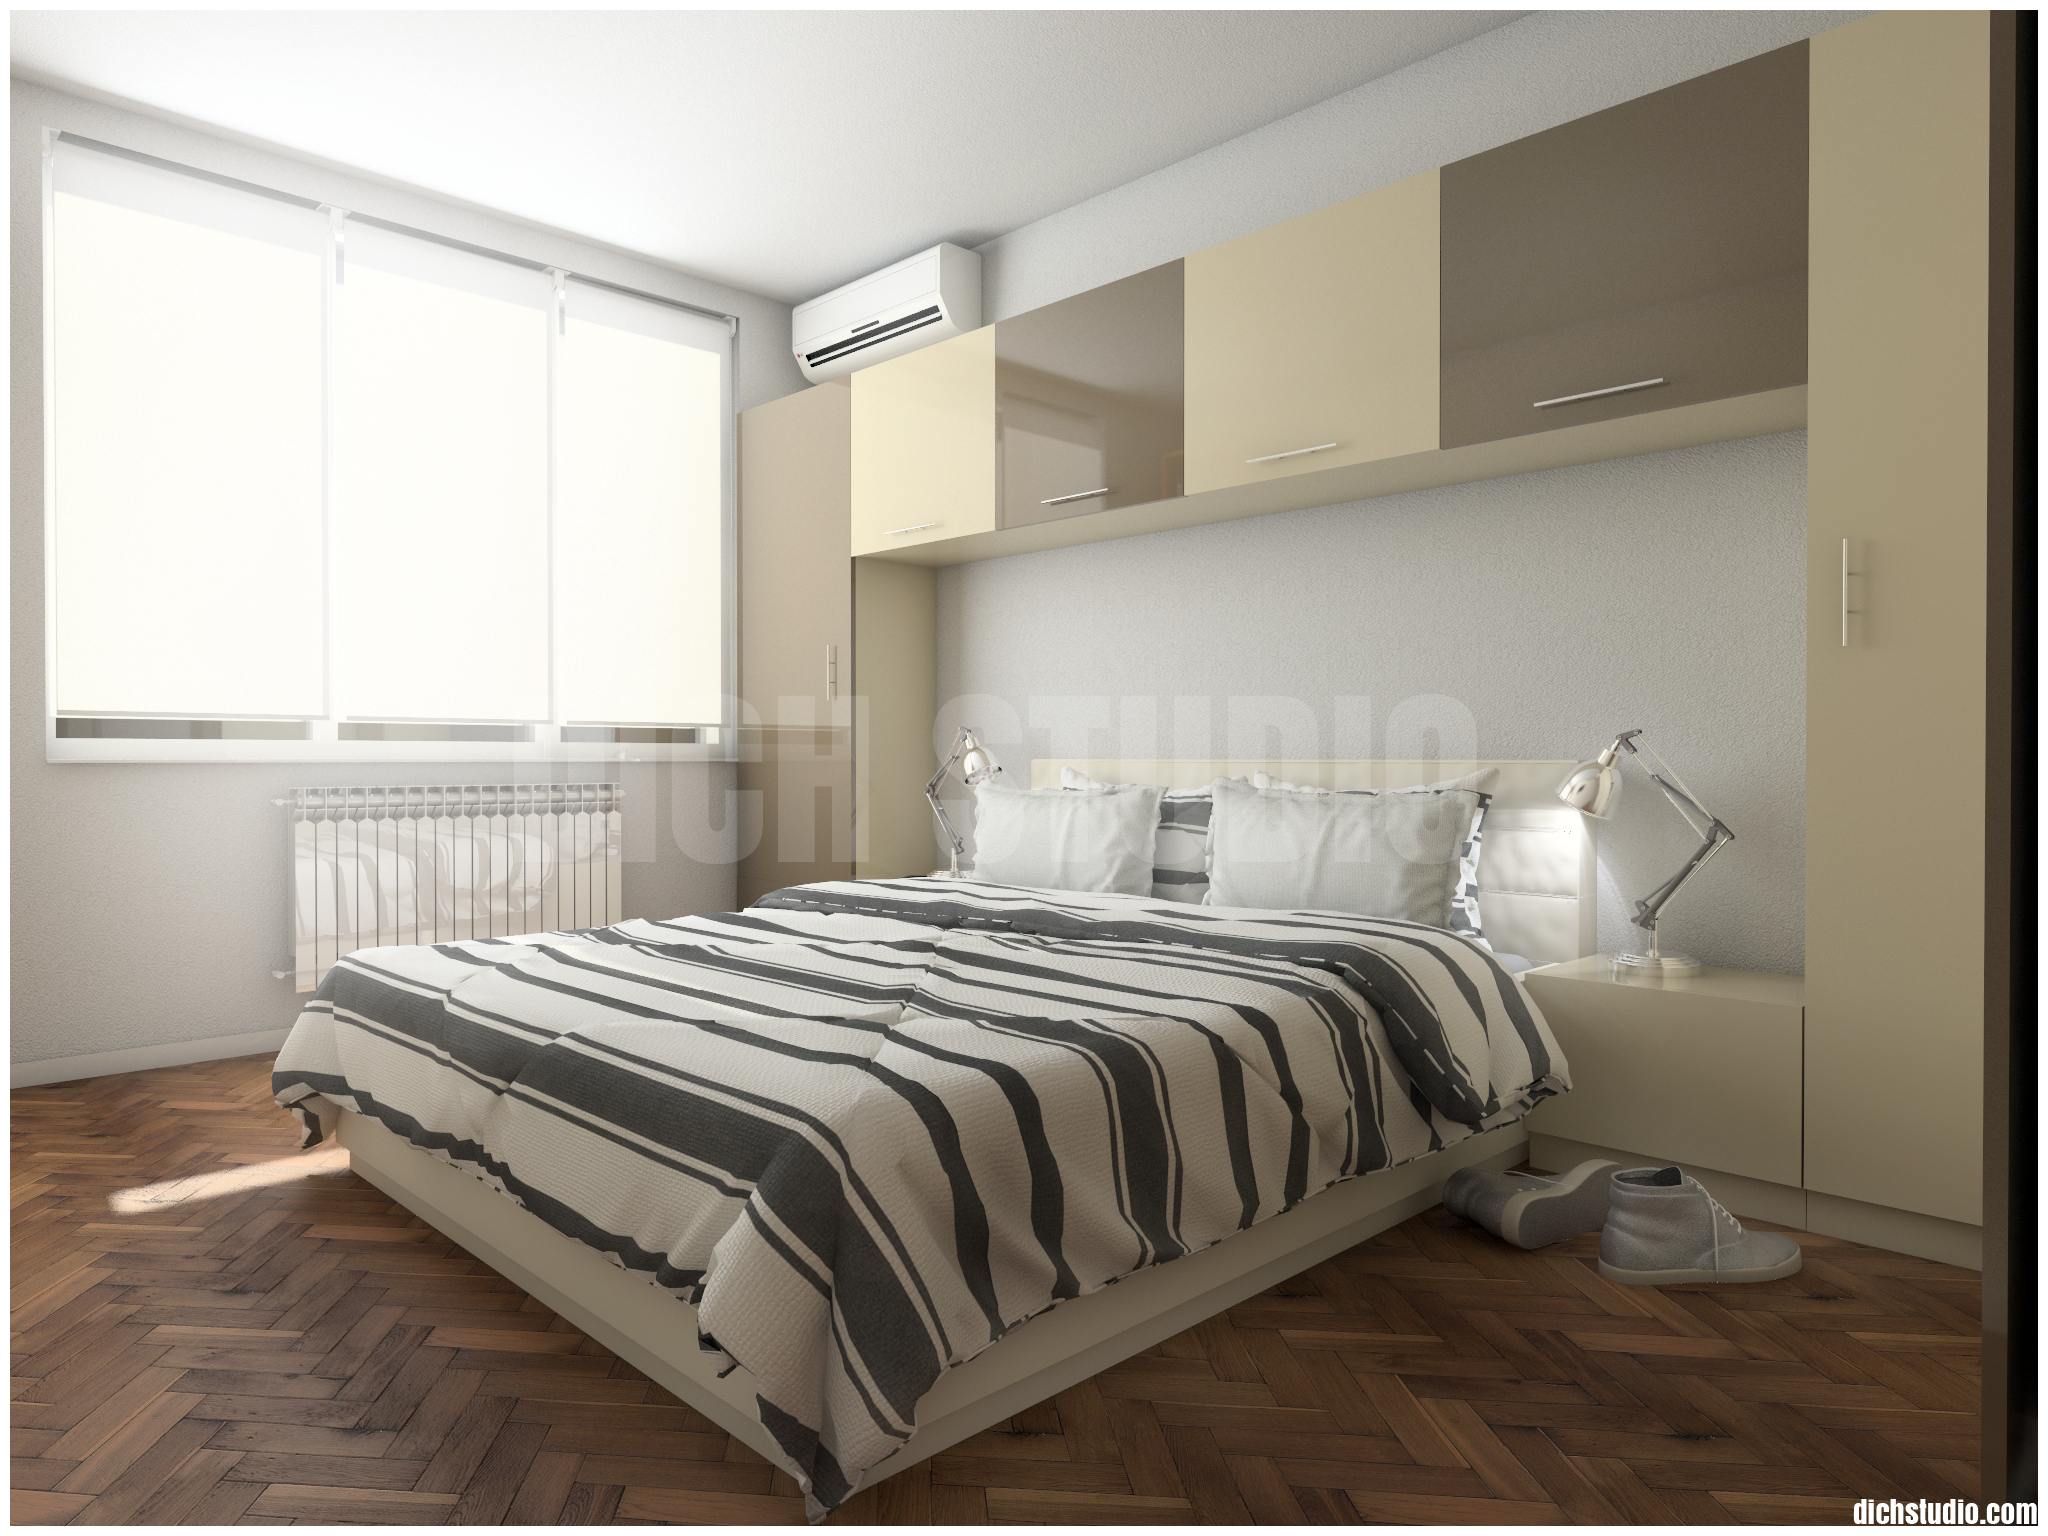 Bedroom interior design project, Banishora, Sofia